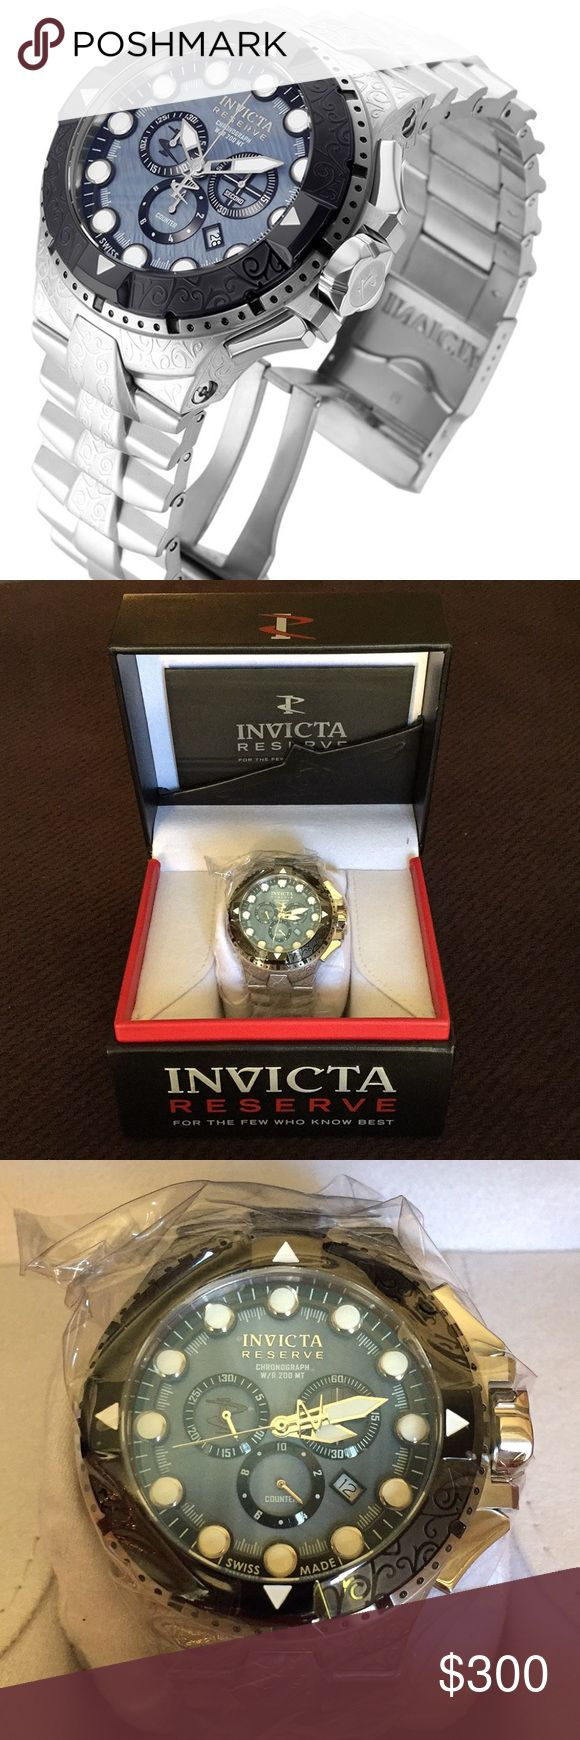 NWT Invicta Excursion Watch Stainless Steel Mens A handsome Invicta excursion quartz watch. Black stainless steel case and band. Model 17862. This watch is brand new, in box and never unwrapped. The case 50 mm and this watch is water resistant up to 200m. It is an incredible quality, Swiss made watch. Invicta Accessories Watches